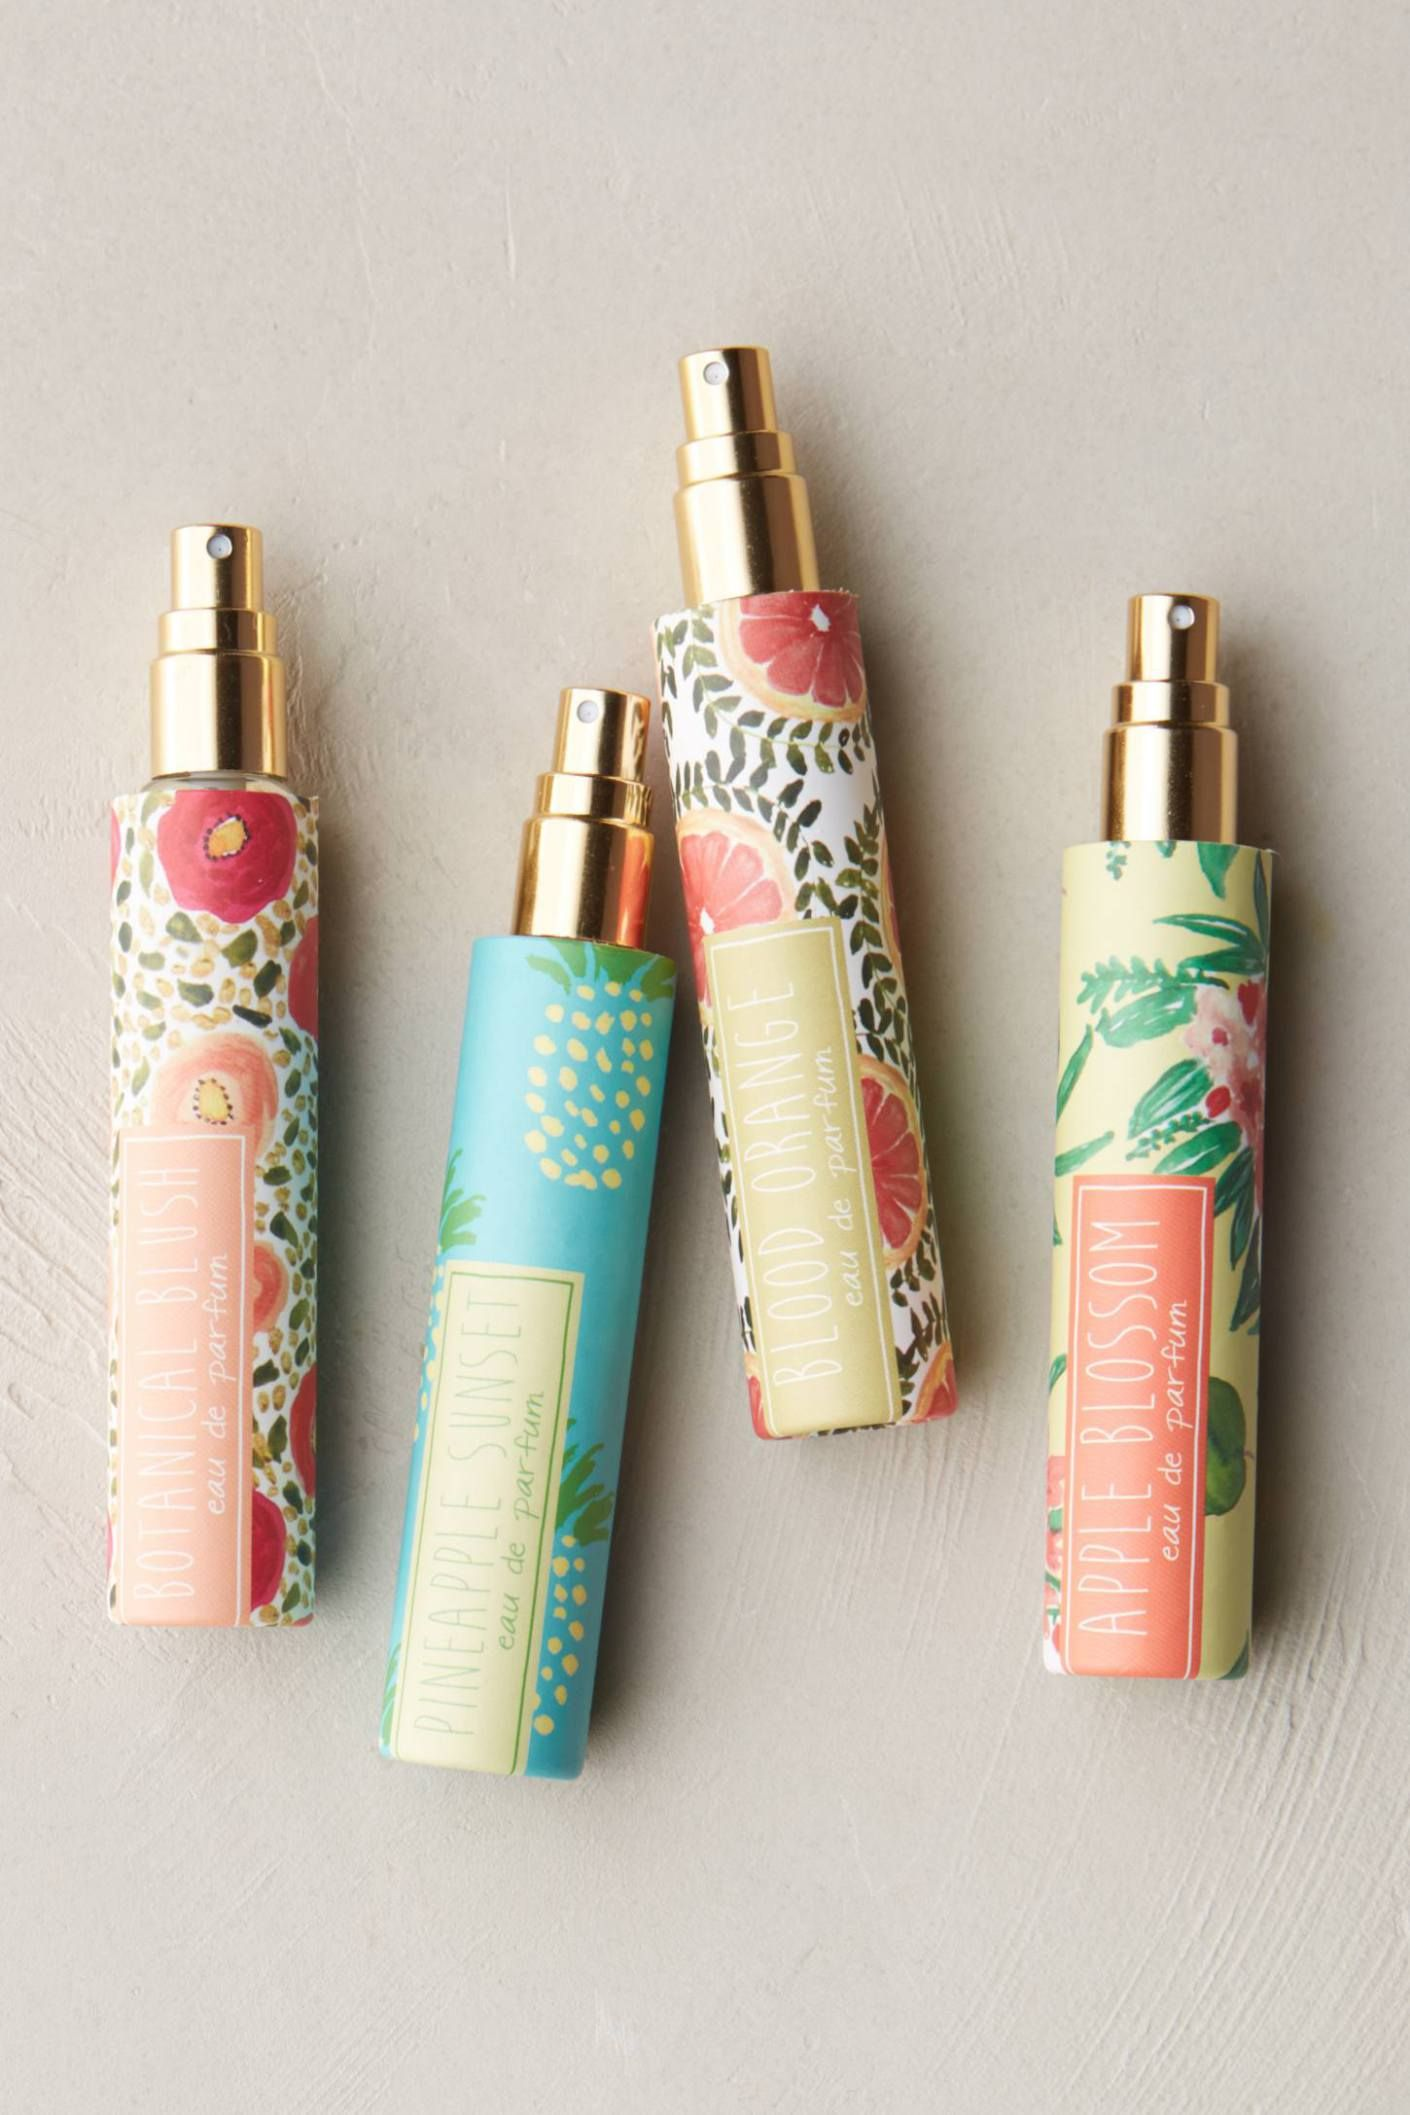 Anthropologie's New Arrivals Beauty Products Perfume